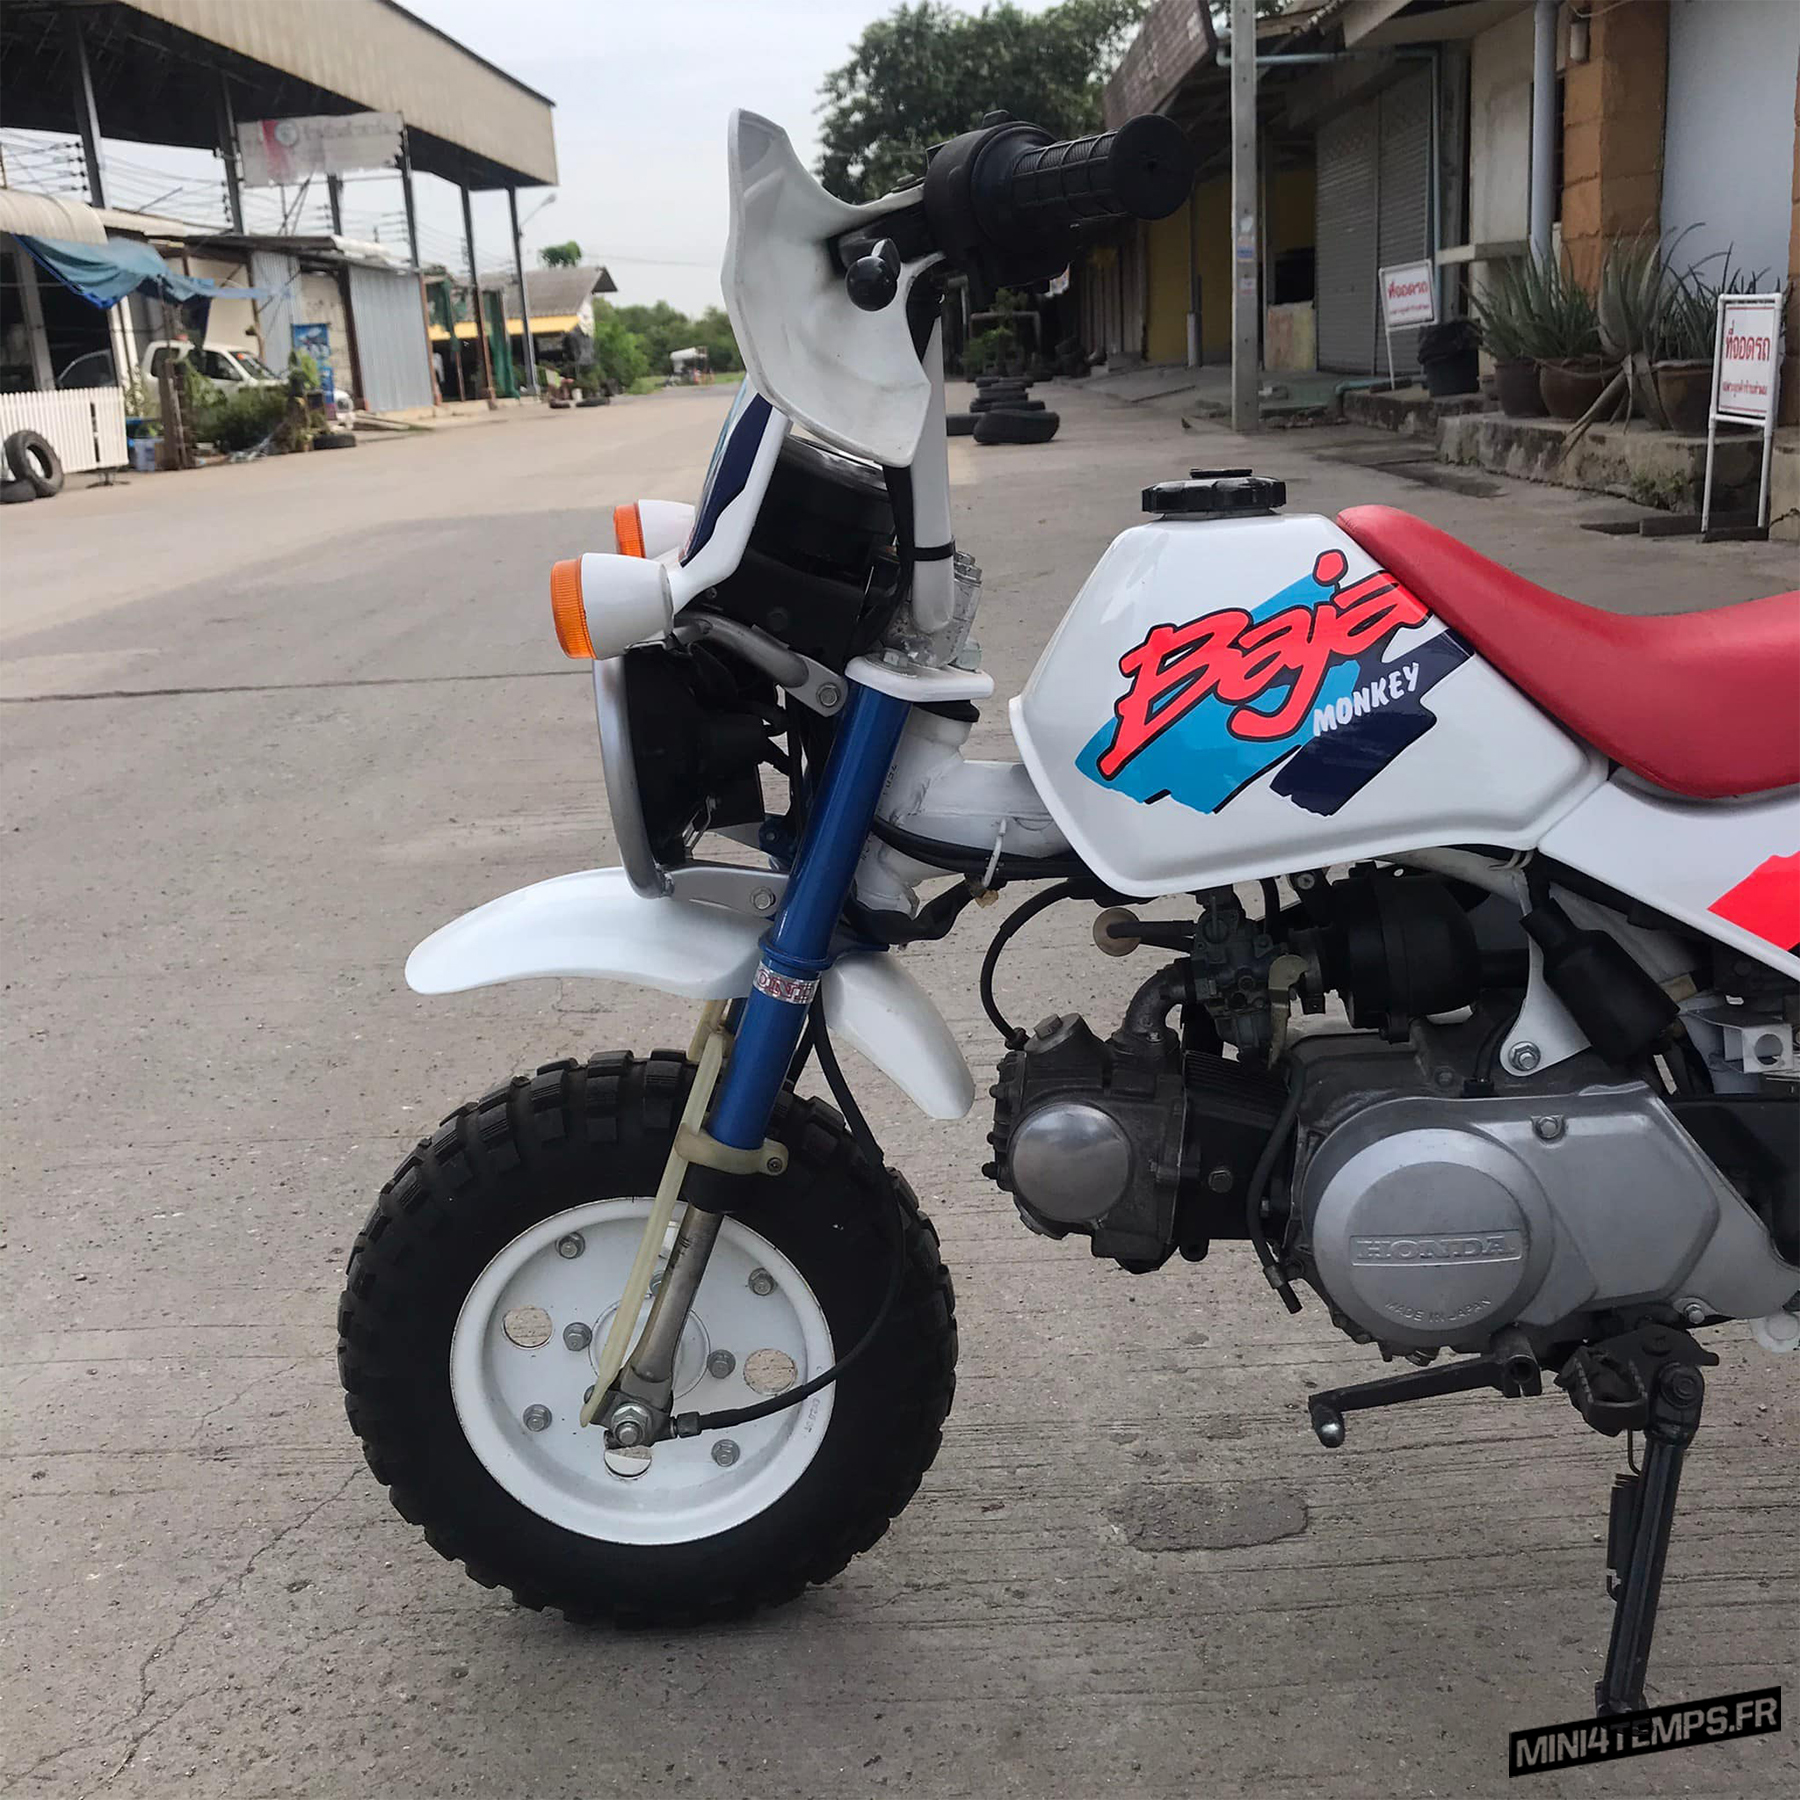 Awesome Honda Monkey Baja de 1992 - mini4temps.fr